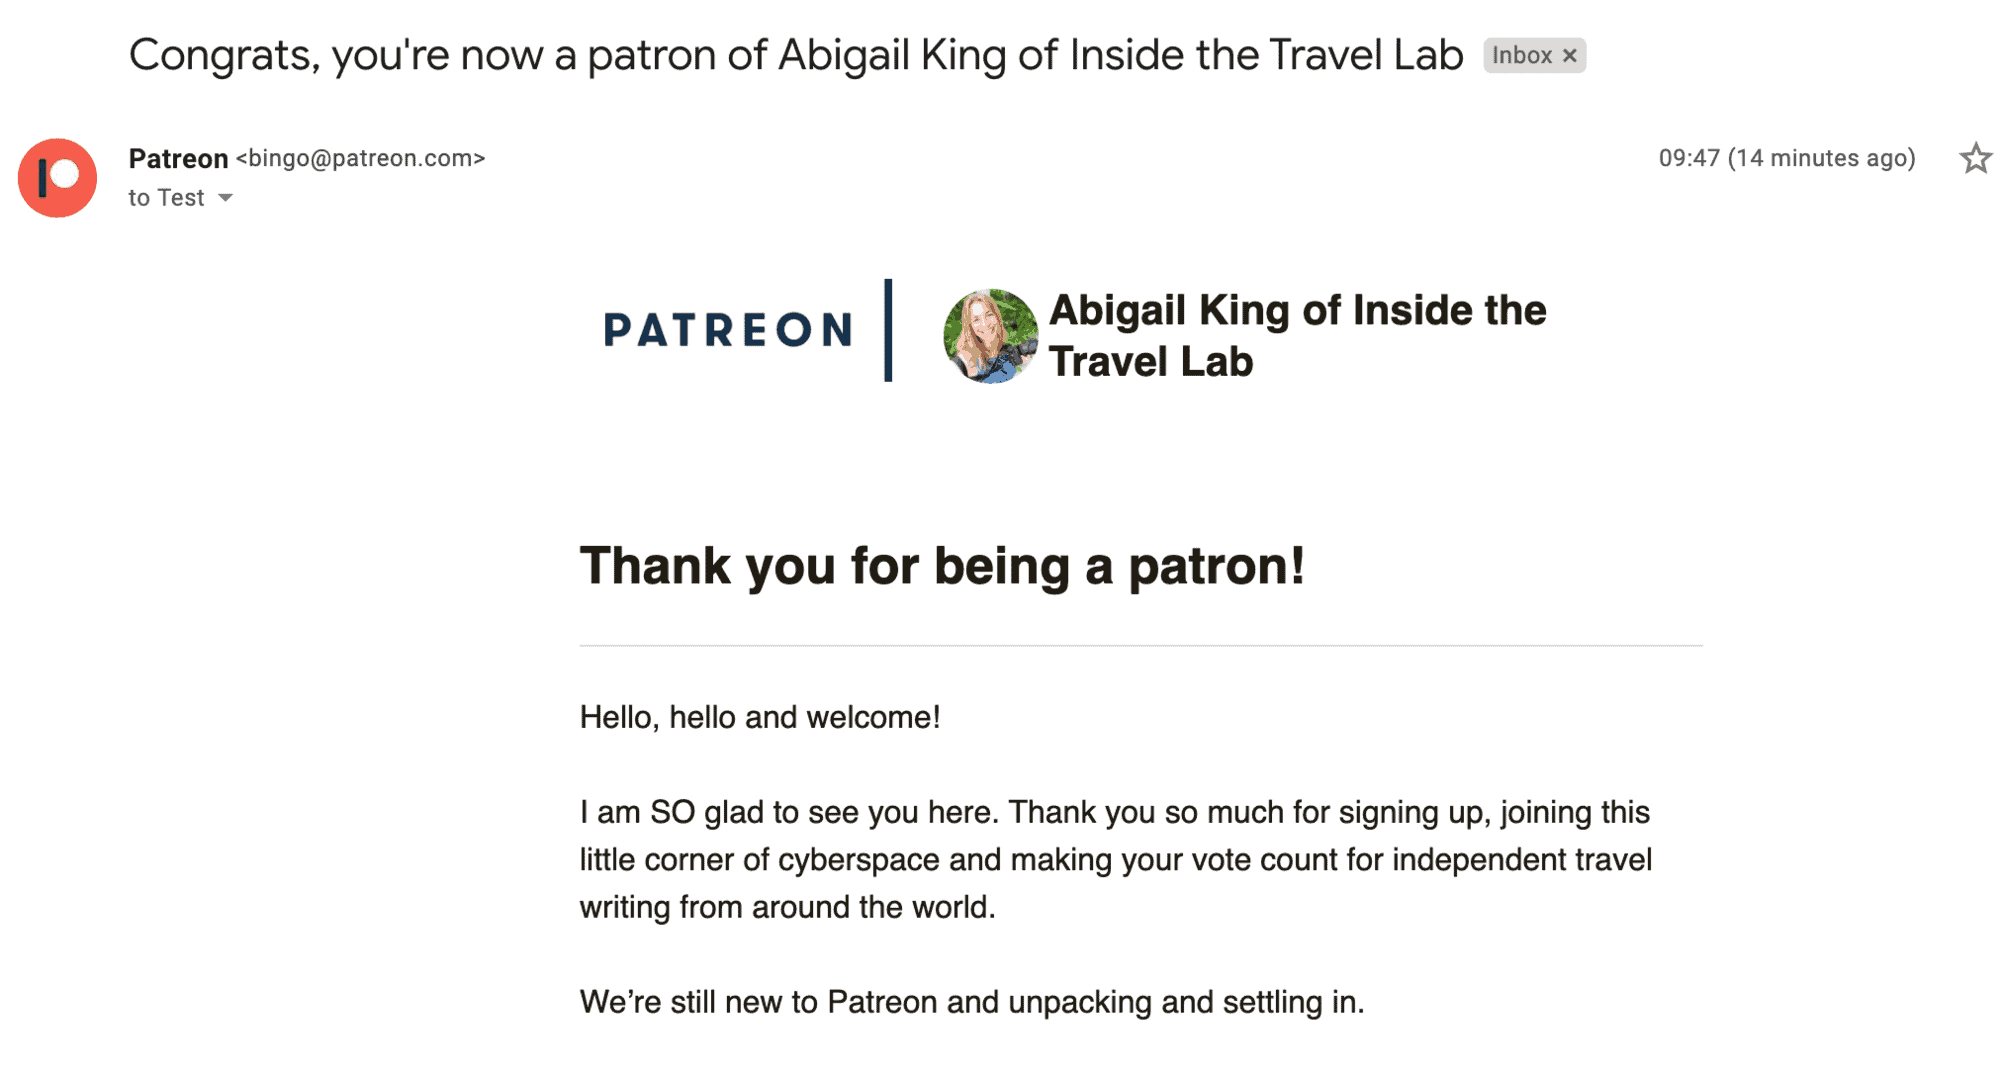 Patreon Thank You Message